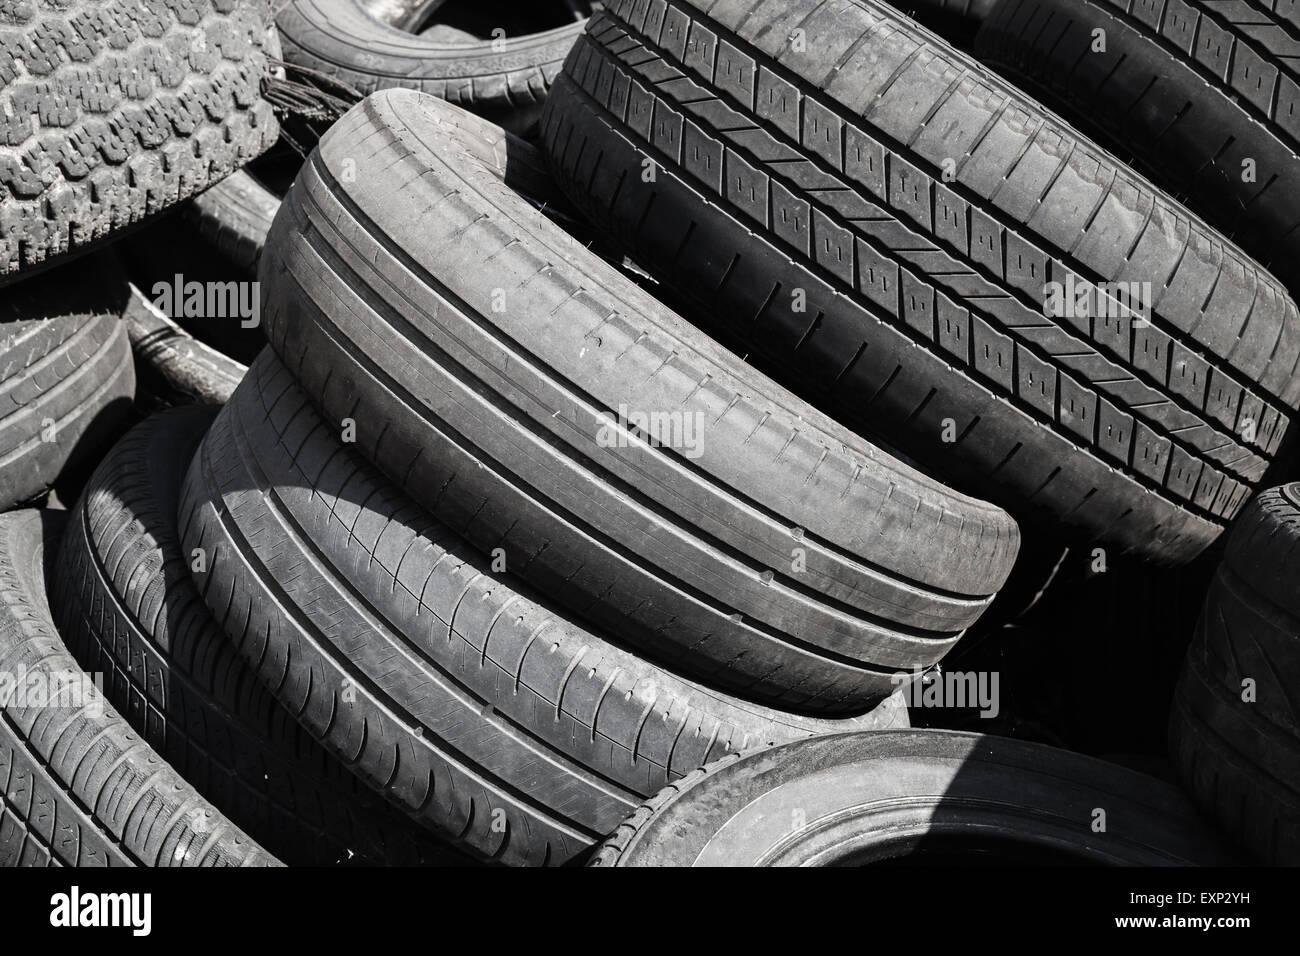 Heap of old used worn-out automotive tires - Stock Image